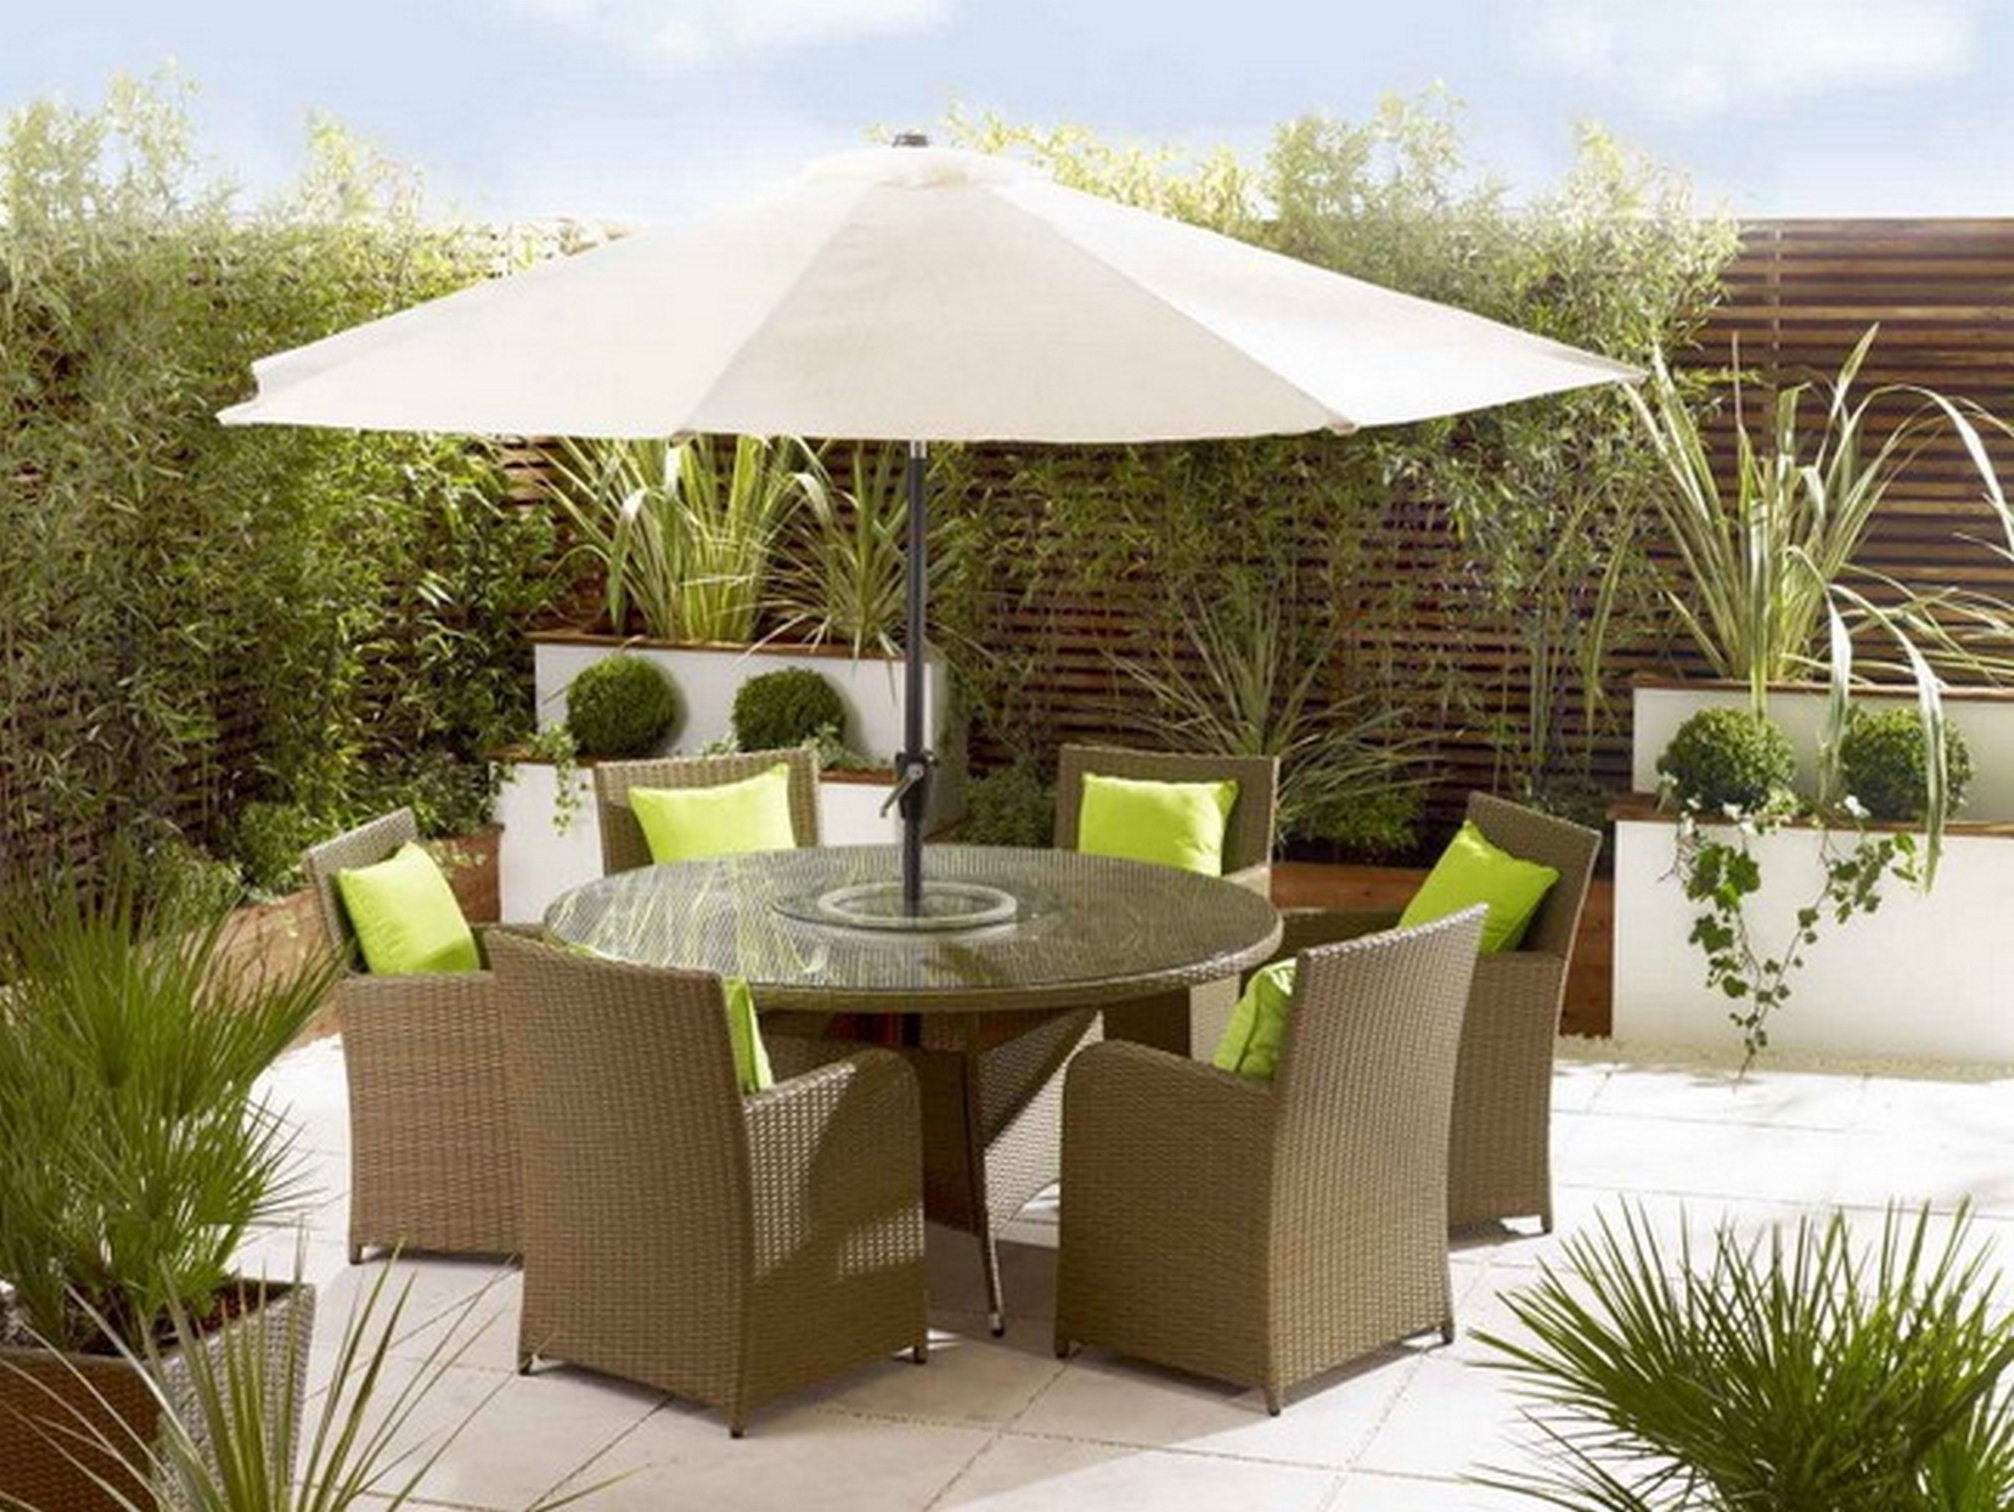 2018 Patio Dining Umbrellas Pertaining To Patio Table Umbrella Cover — Mistikcamping Home Design : The Patio (Gallery 10 of 20)